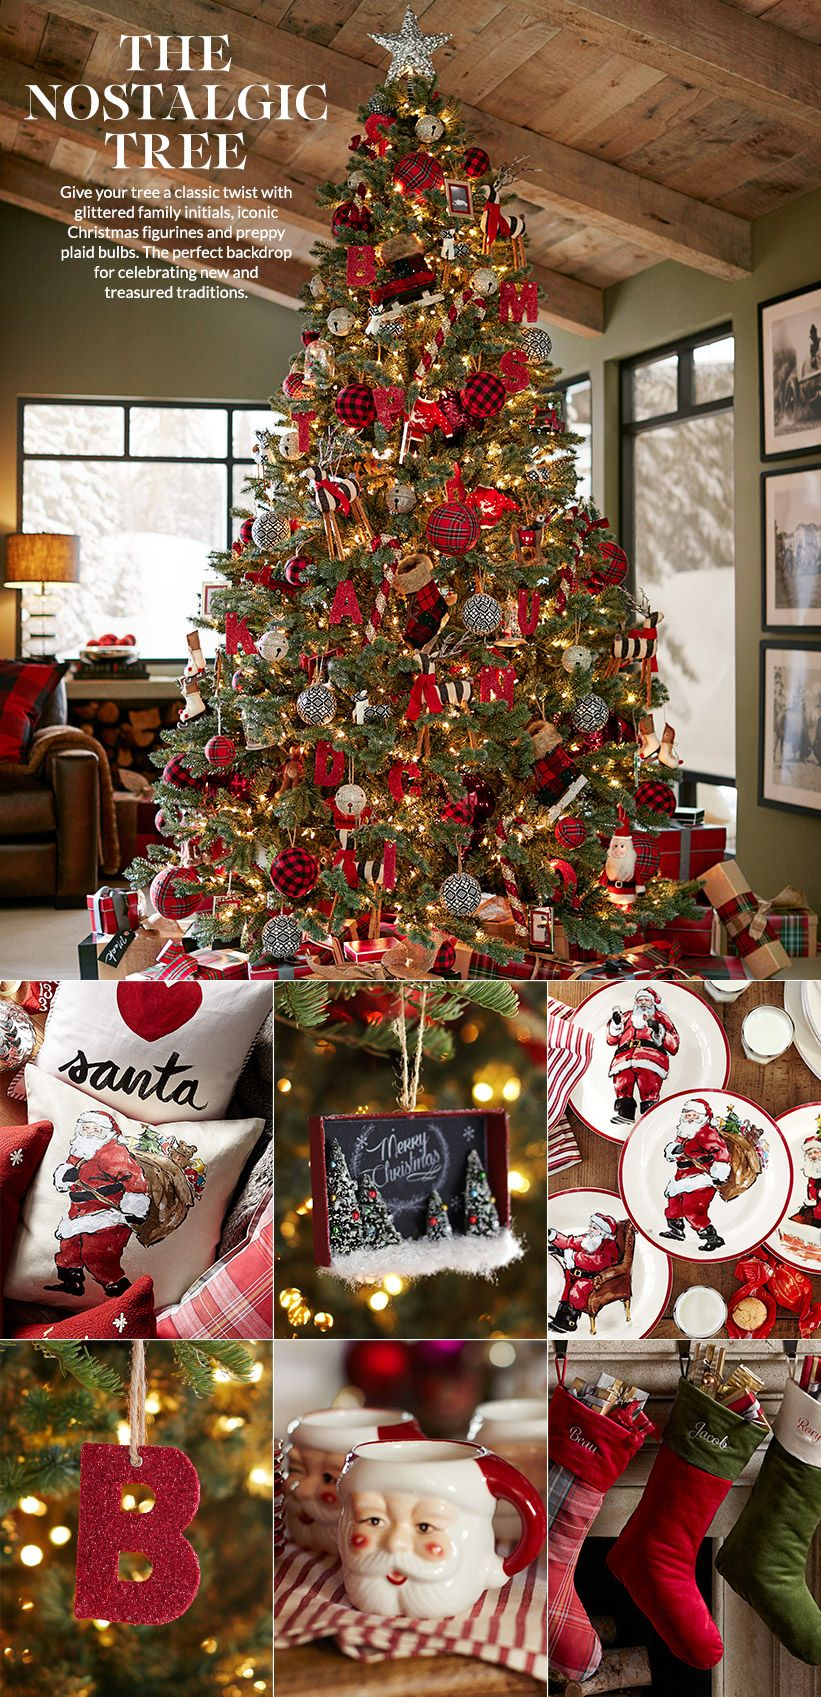 christmas decor christmas tree theme traditional nostalgic theme red and black gingham pottery barn